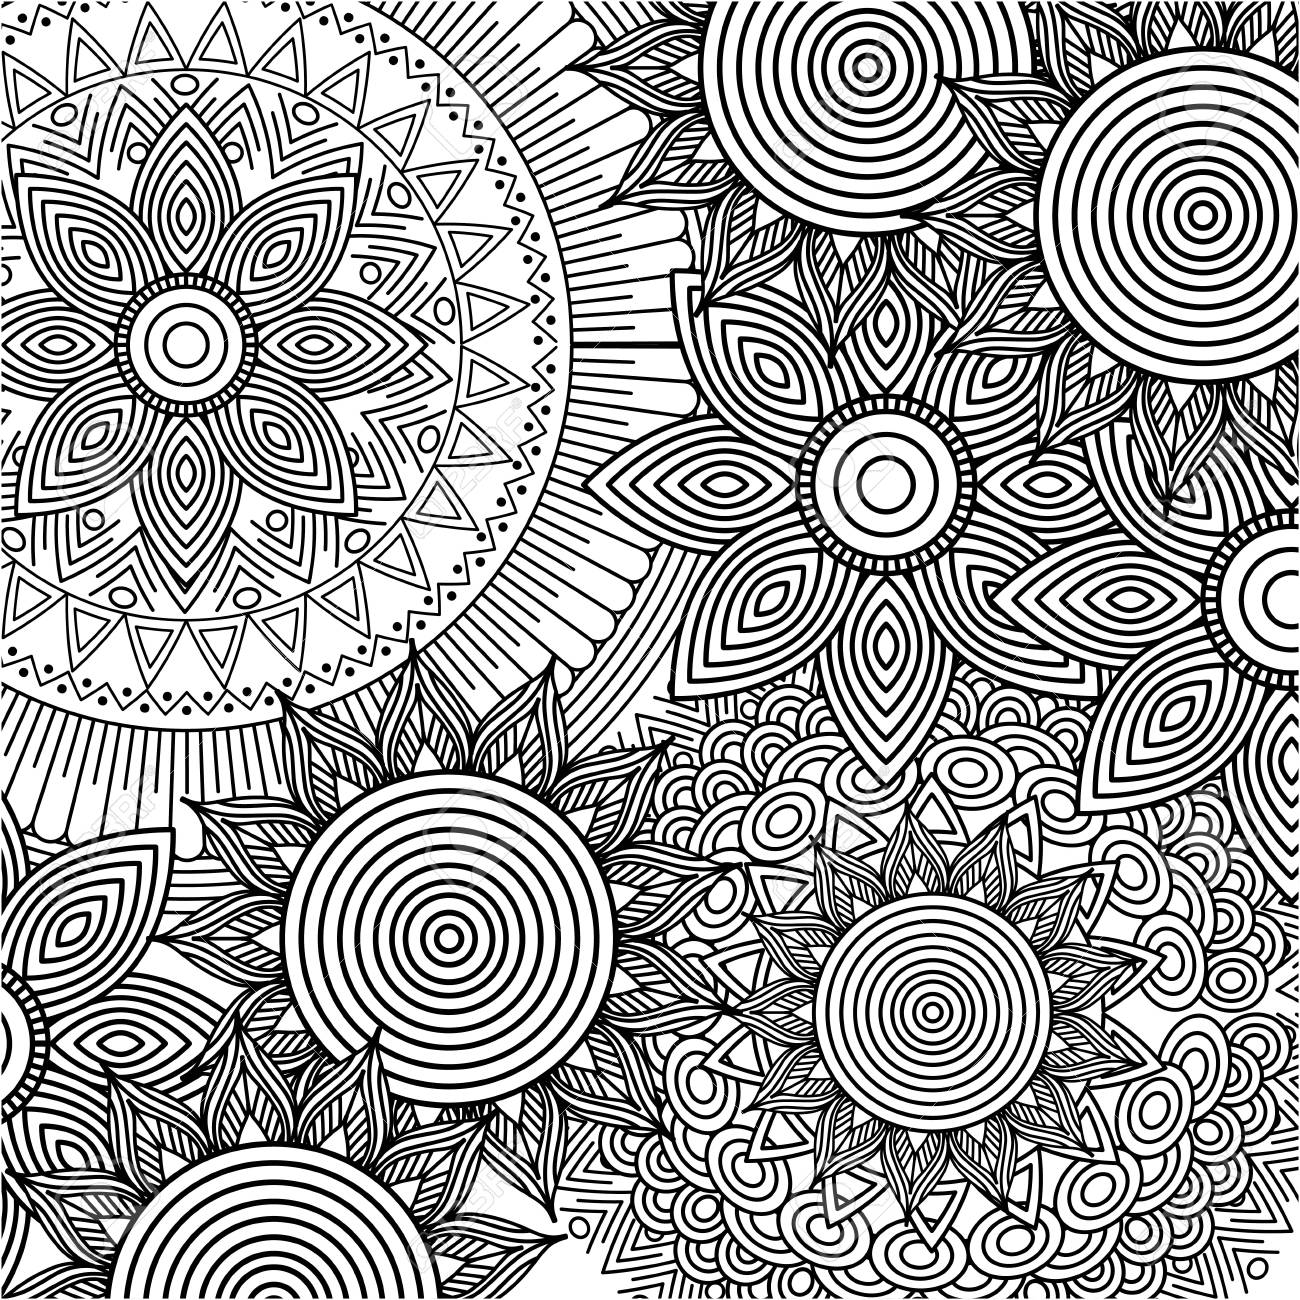 seamless pattern floral round abstract vintage decorative element background adult coloring vector illustration - 93657994